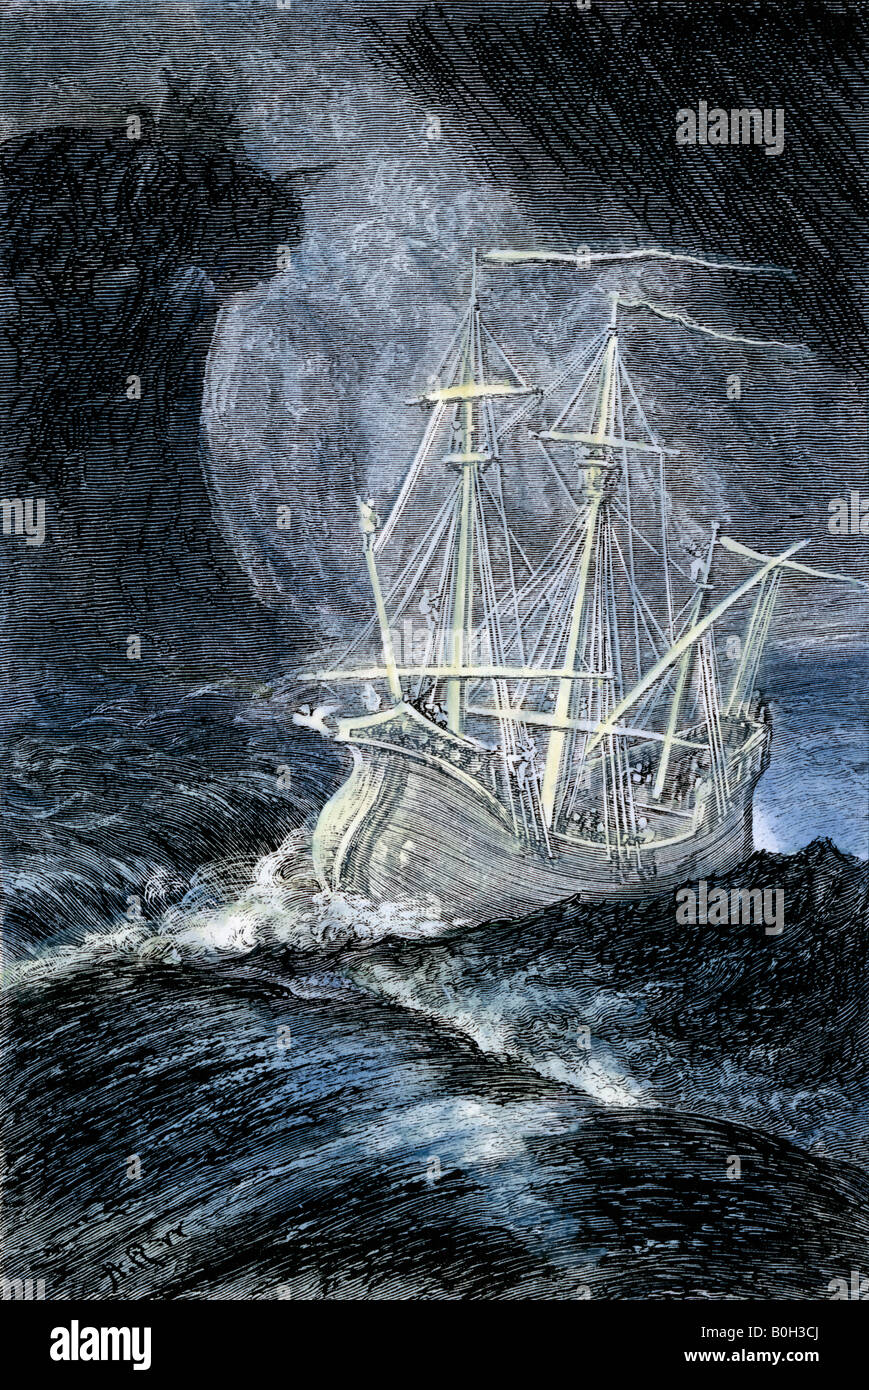 Ghost ship in a storm. Hand-colored woodcut - Stock Image